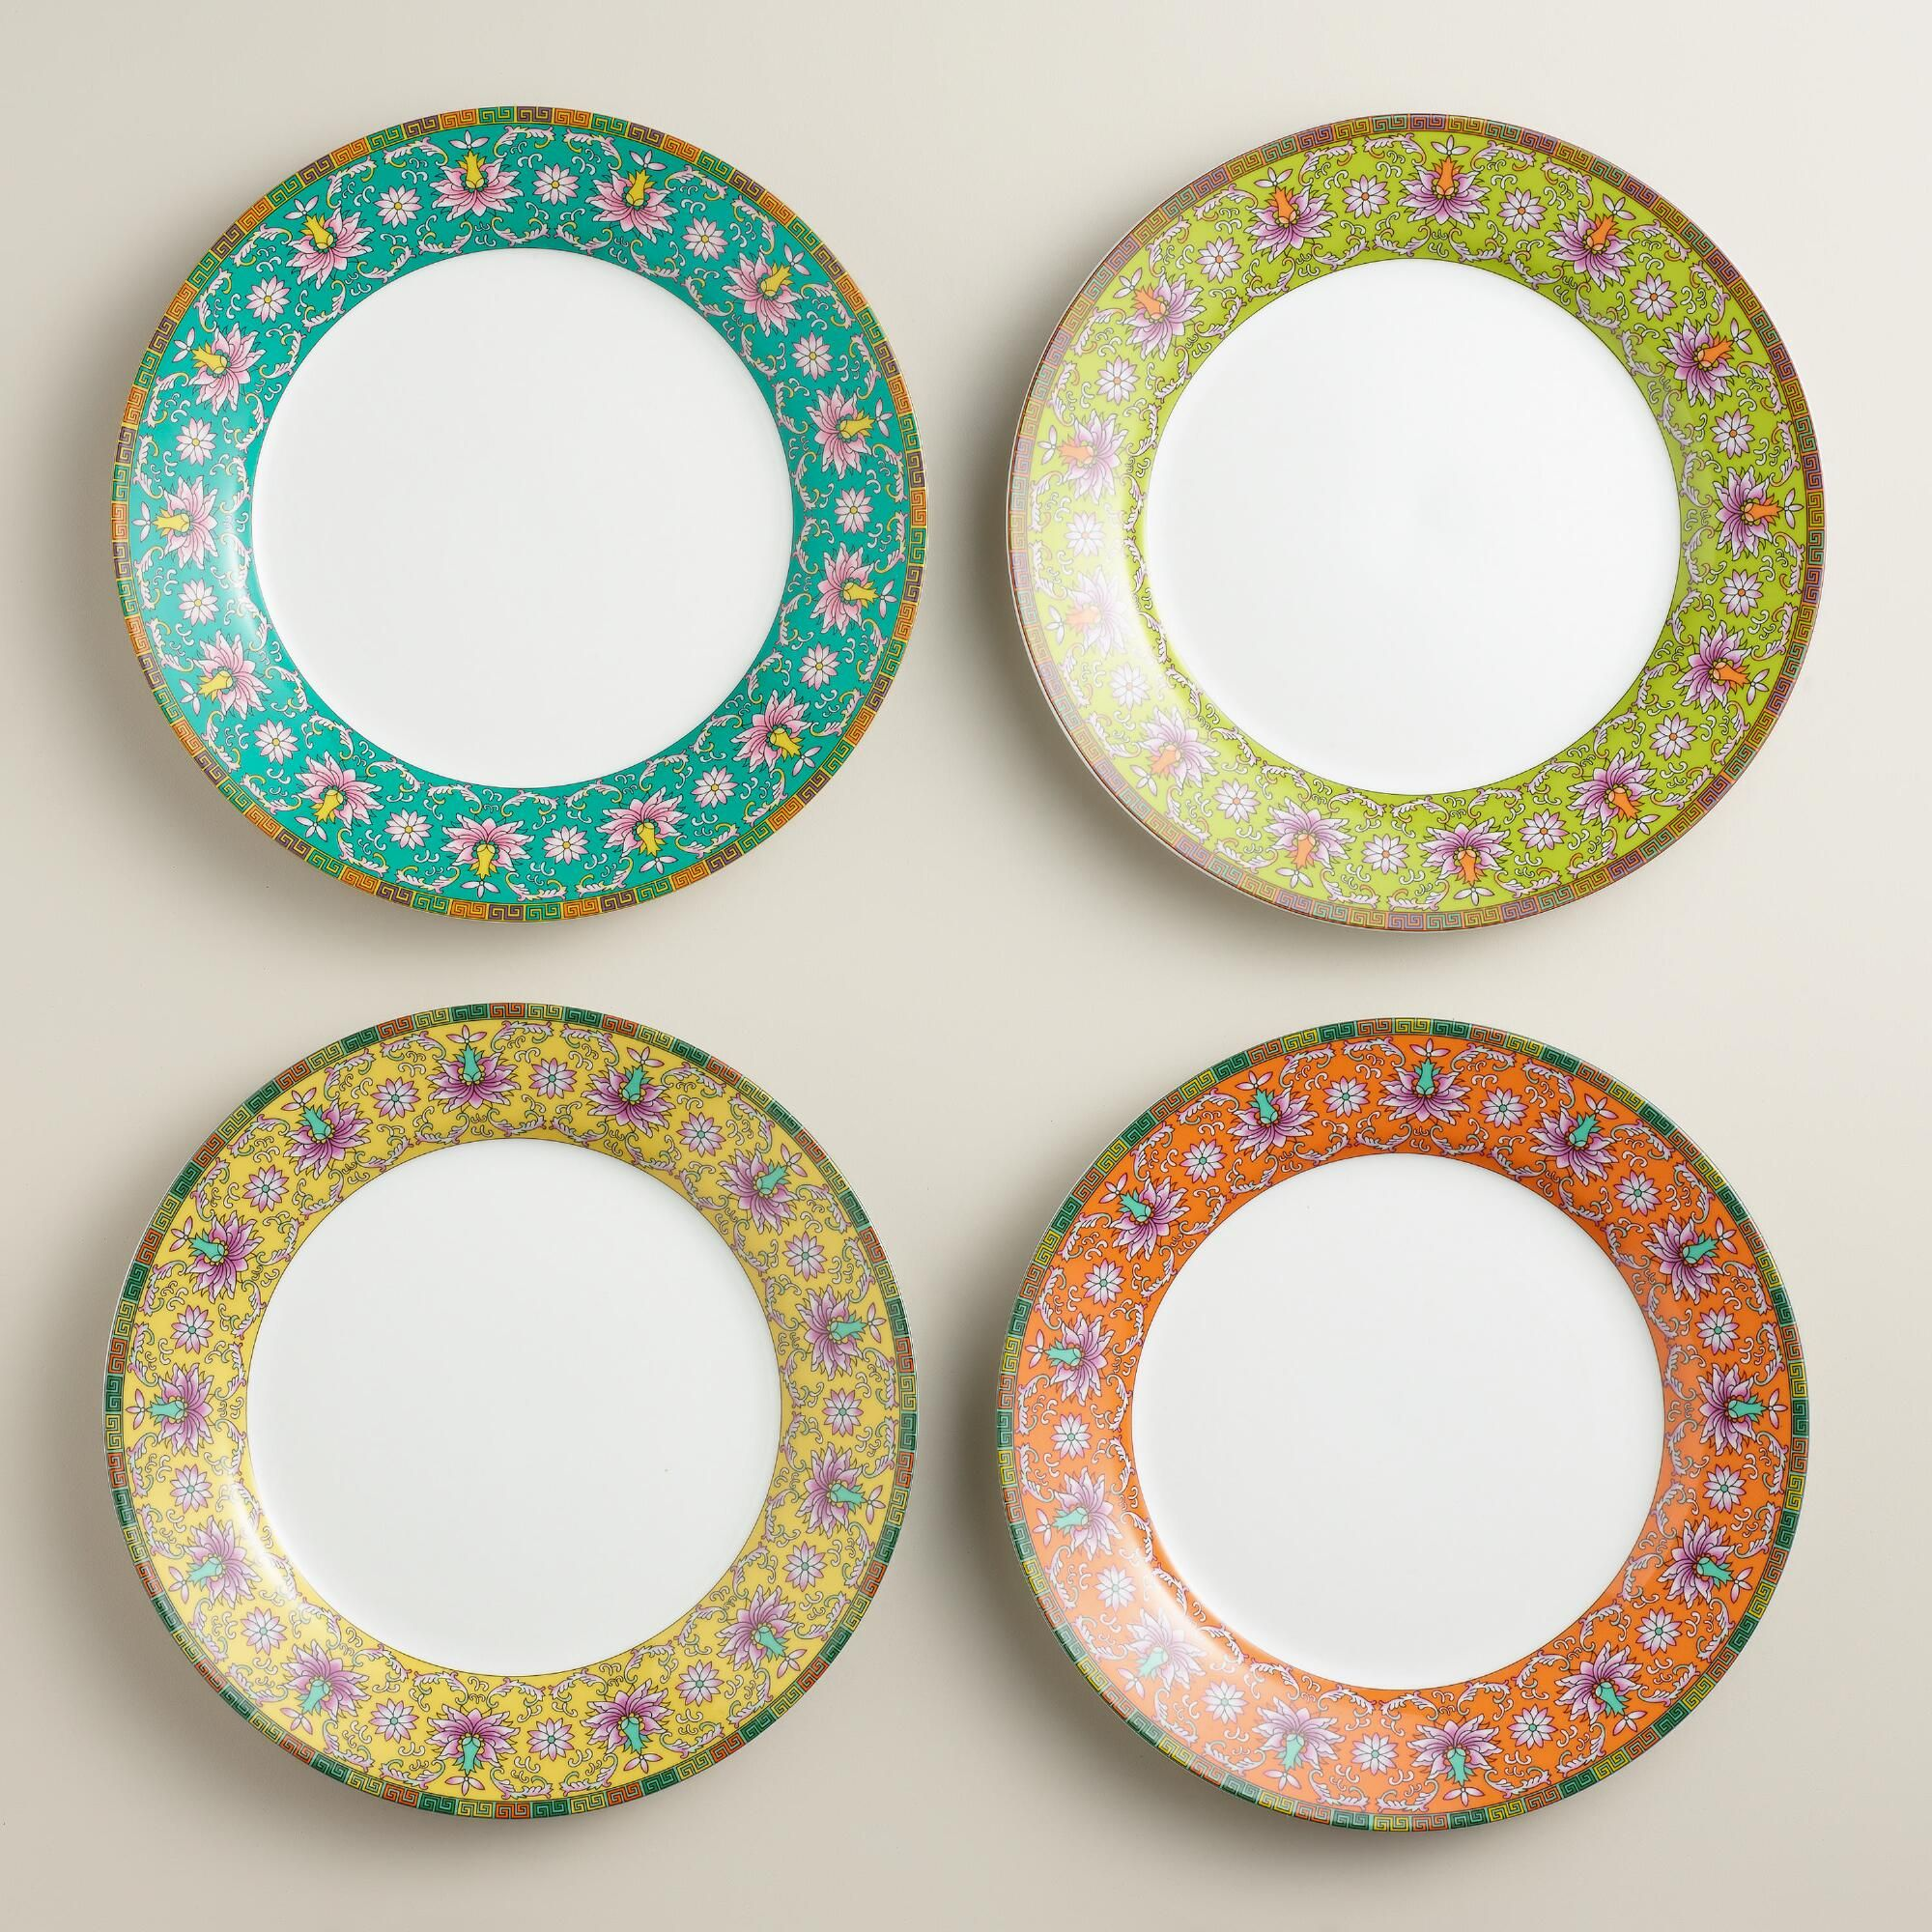 Capture the spirit of simple and elegant Asian-inspired design with our exclusive plates.  sc 1 st  Pinterest & Capture the spirit of simple and elegant Asian-inspired design with ...